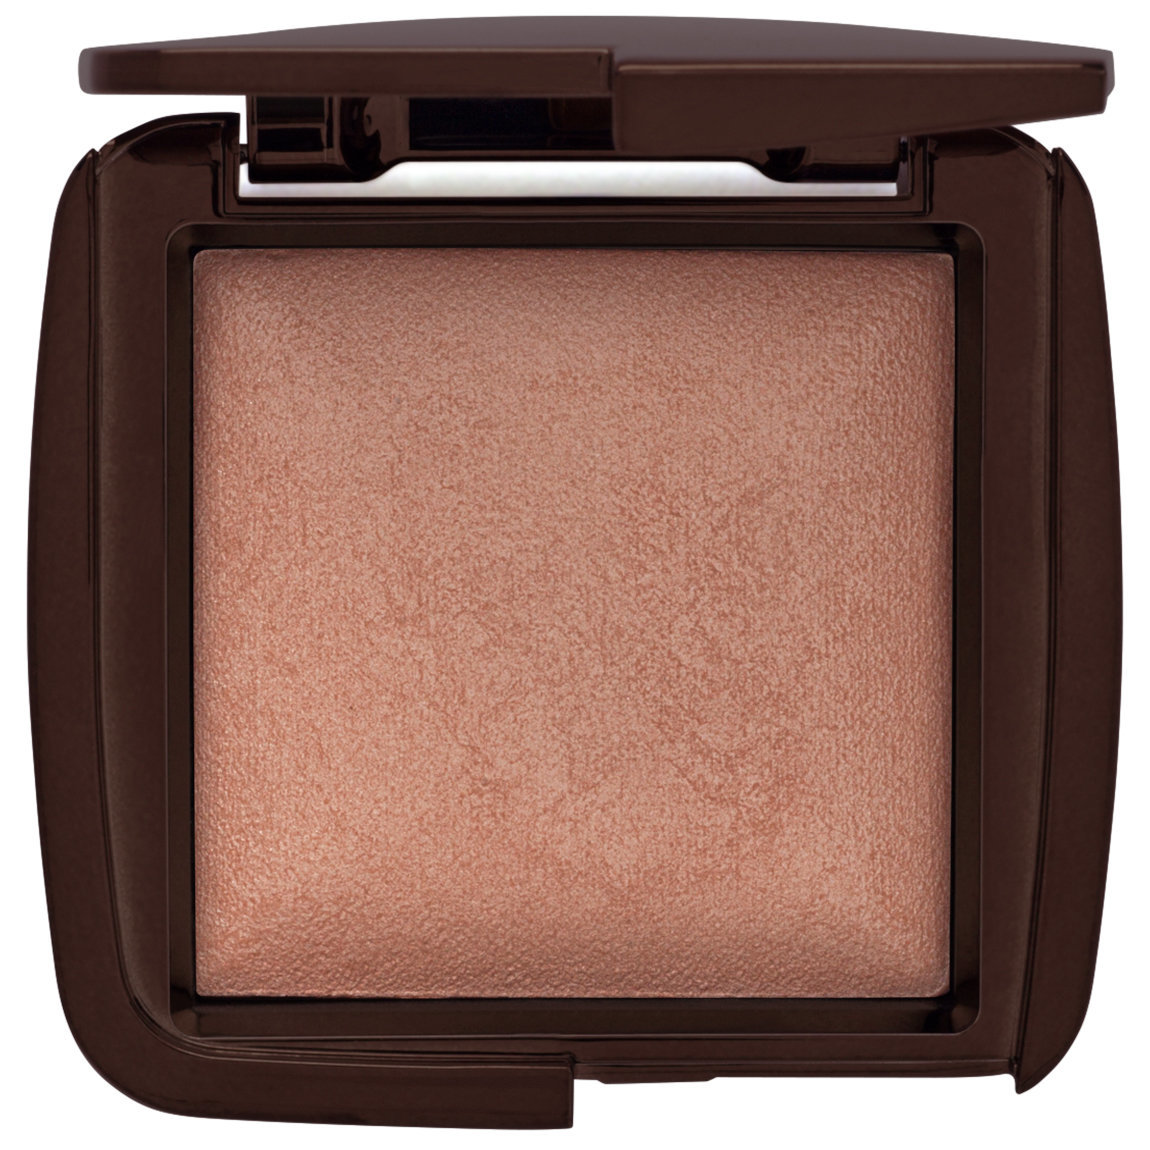 Hourglass Ambient Lighting Powder Luminous Light alternative view 1 - product swatch.